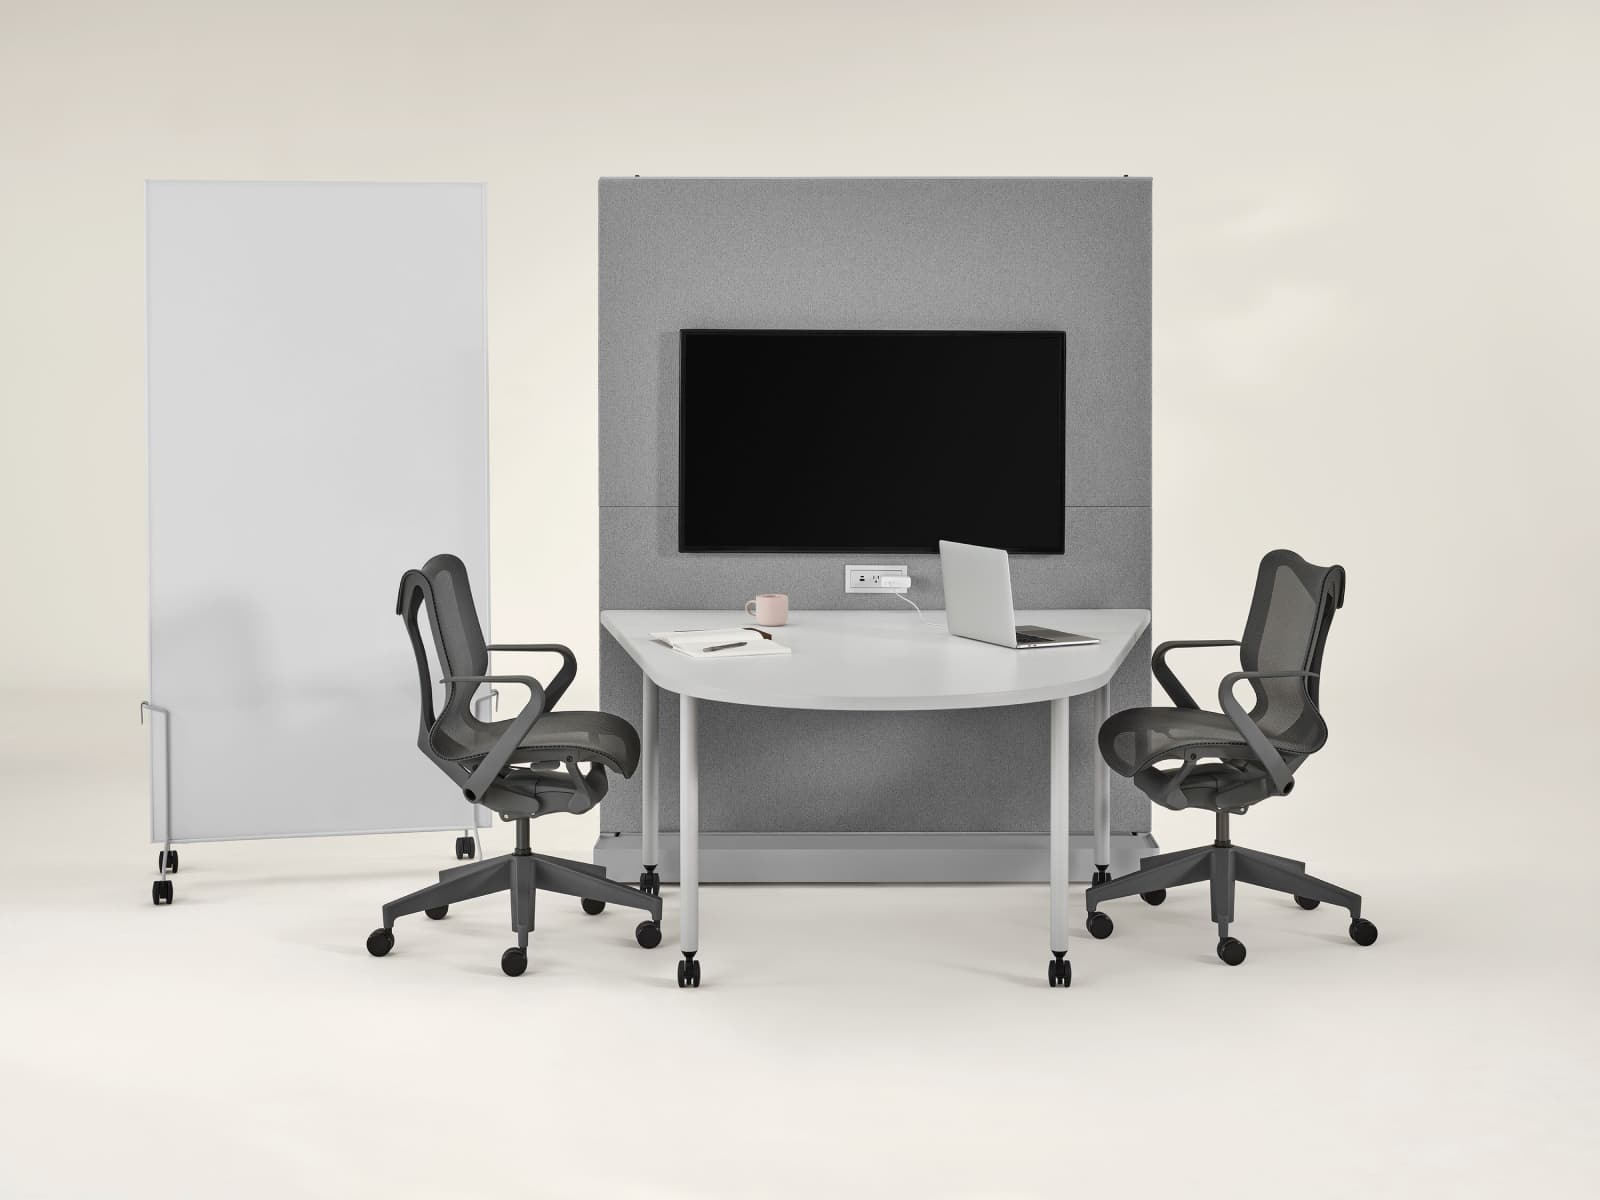 Grey OE1 Agile Wall with grey OE1 Huddle Table, grey OE1 Mobile Easel and marker board and dark grey Cosm Chairs.